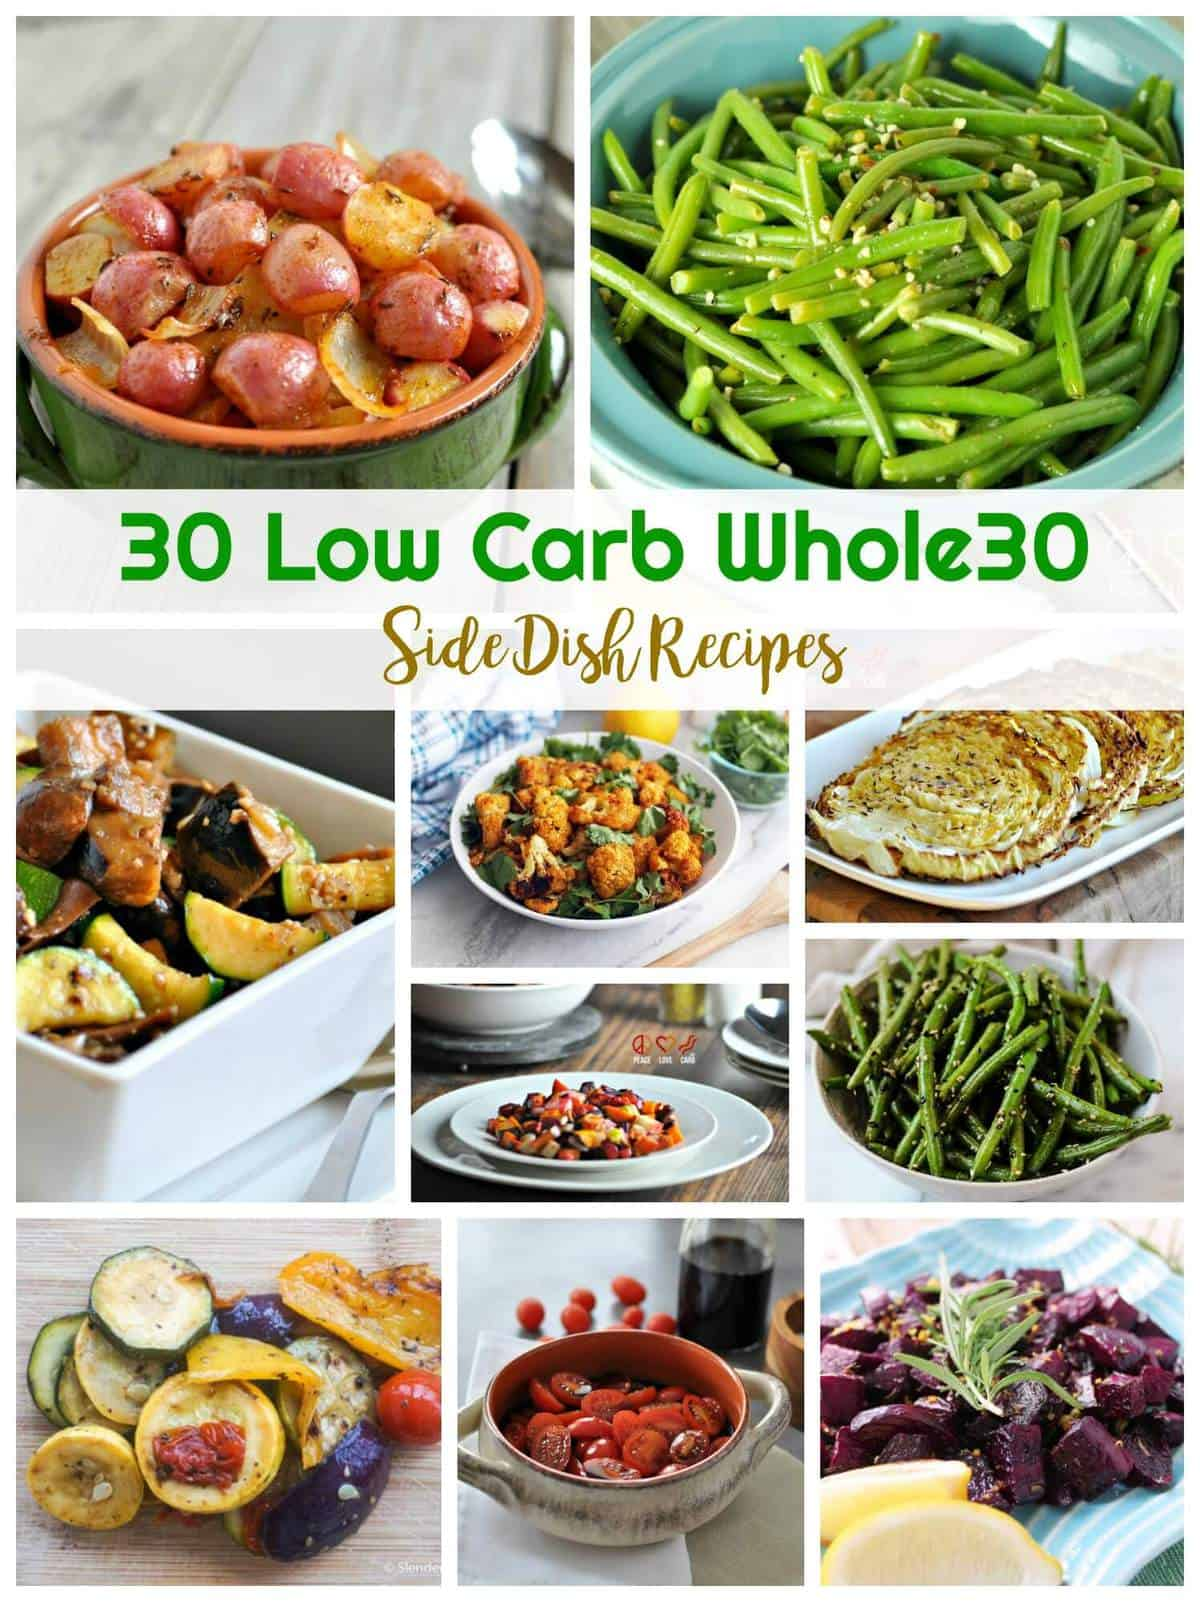 30 Low Carb Whole30 Side Dish Recipes | Healthy Living in Body and Mind